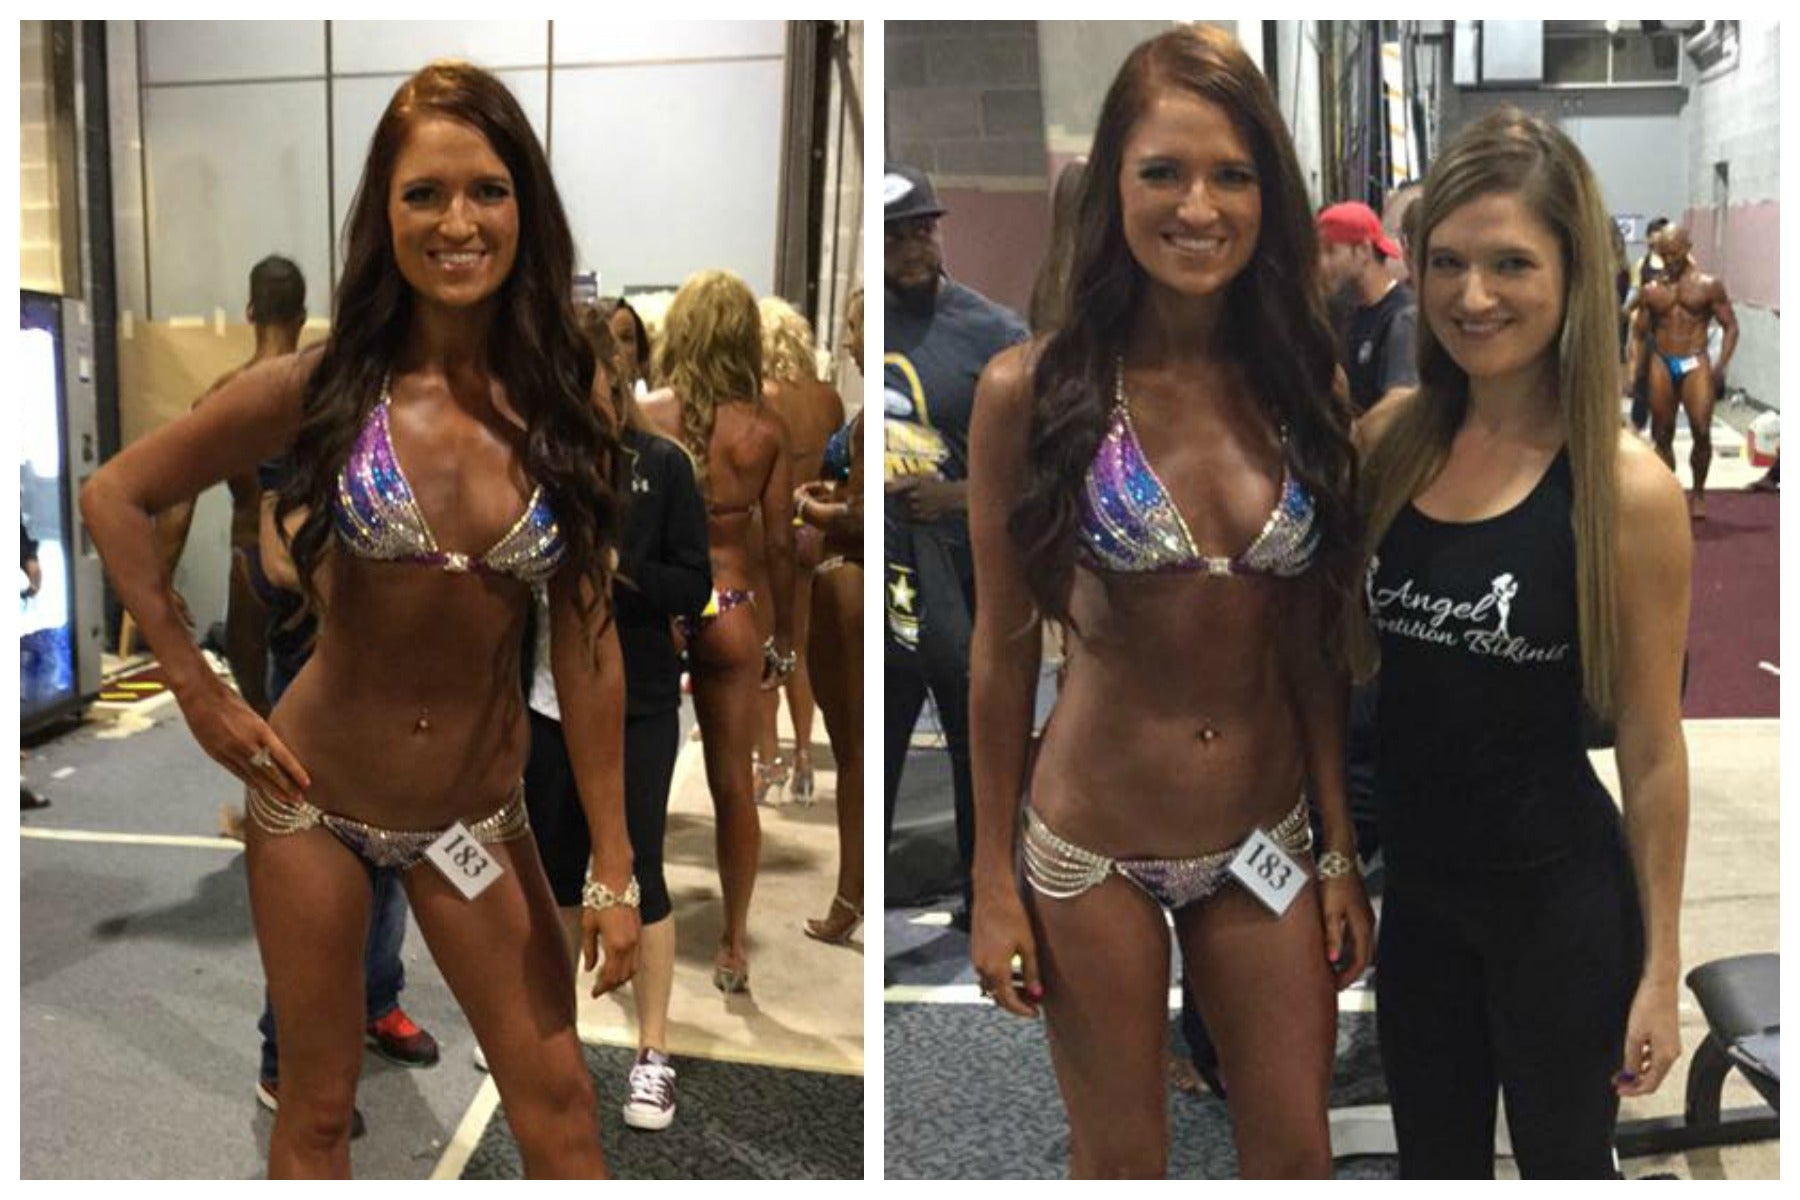 Angel Competition Bikinis and Competition Figure suits